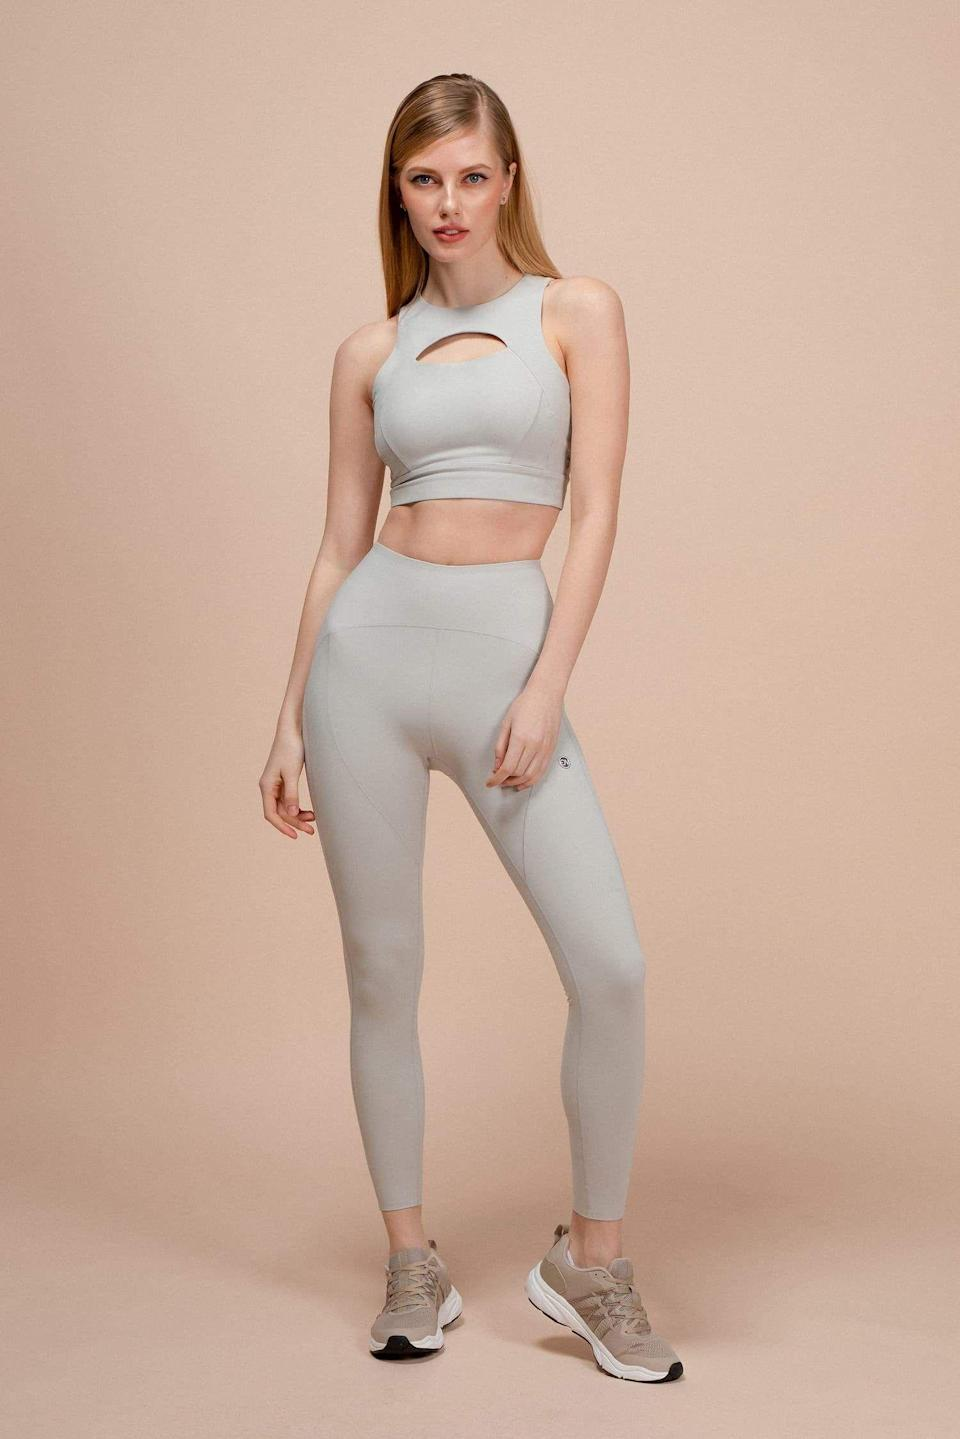 """<p><strong>Enavant Active </strong></p><p>enavantactive.com</p><p><strong>$105.00</strong></p><p><a href=""""https://www.enavantactive.com/products/nova-leggings?variant=32247089004621"""" rel=""""nofollow noopener"""" target=""""_blank"""" data-ylk=""""slk:Shop Now"""" class=""""link rapid-noclick-resp"""">Shop Now</a></p><p>If you are on the hunt for a new activewear brand, Enavant is the one to know. The brand offers outerwear, halter sports bras, leggings, and sets crafted with the brand's custom-made fabric. The fabric is breathable, features anti-odor technology, has UV protection, and is wrinkle and dust free.</p>"""